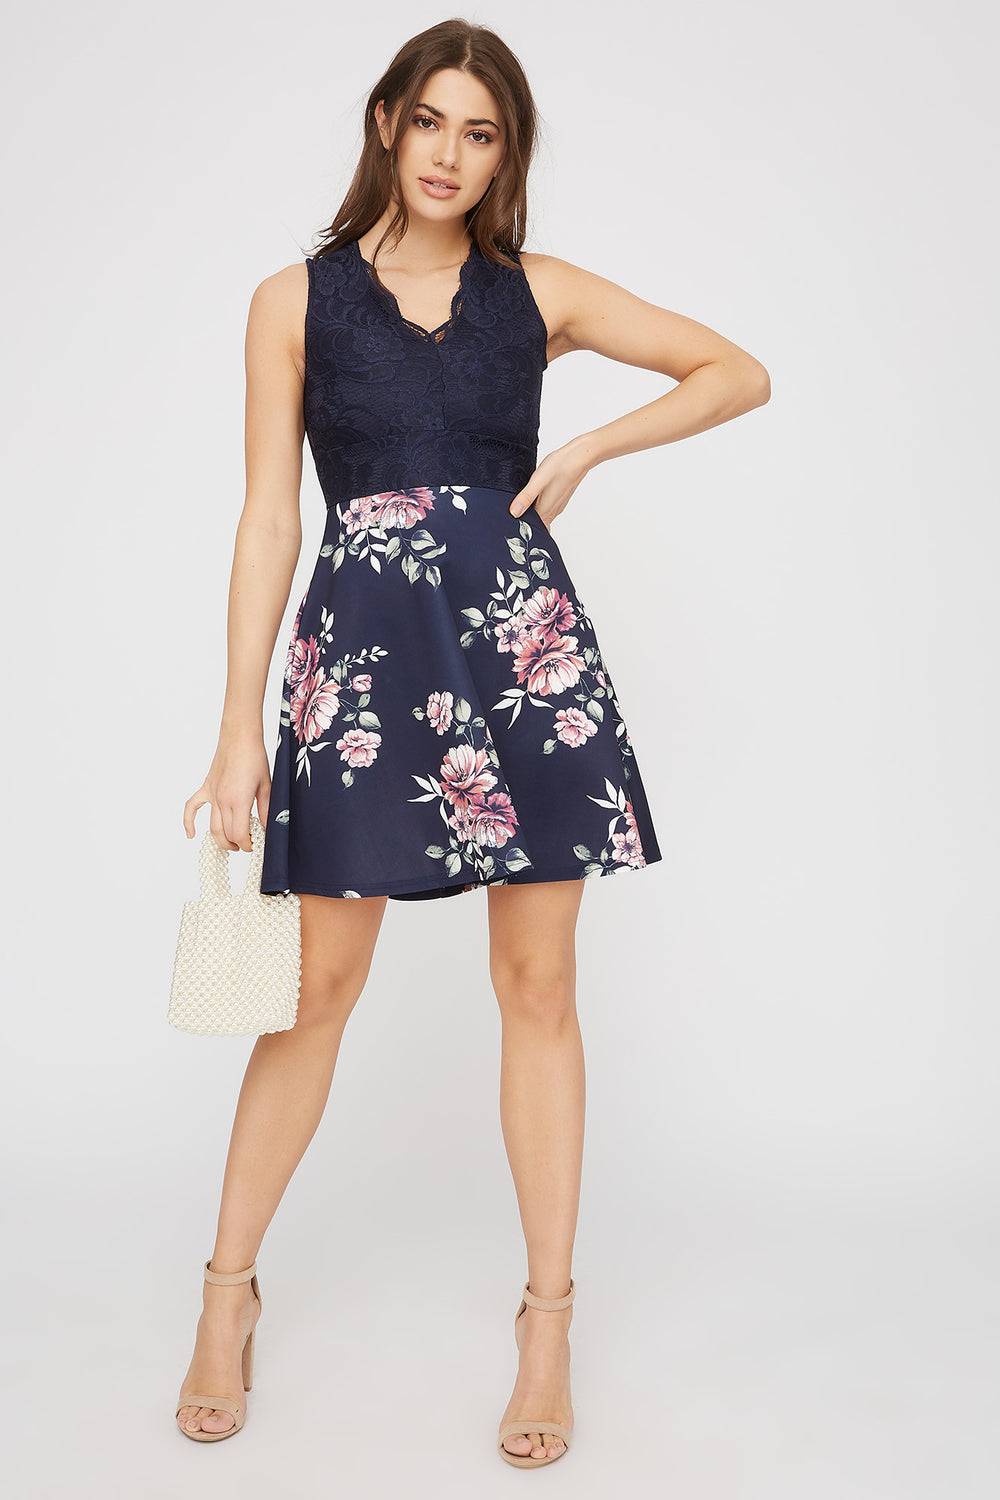 Contrast Lace Floral Skater Dress Dark Blue